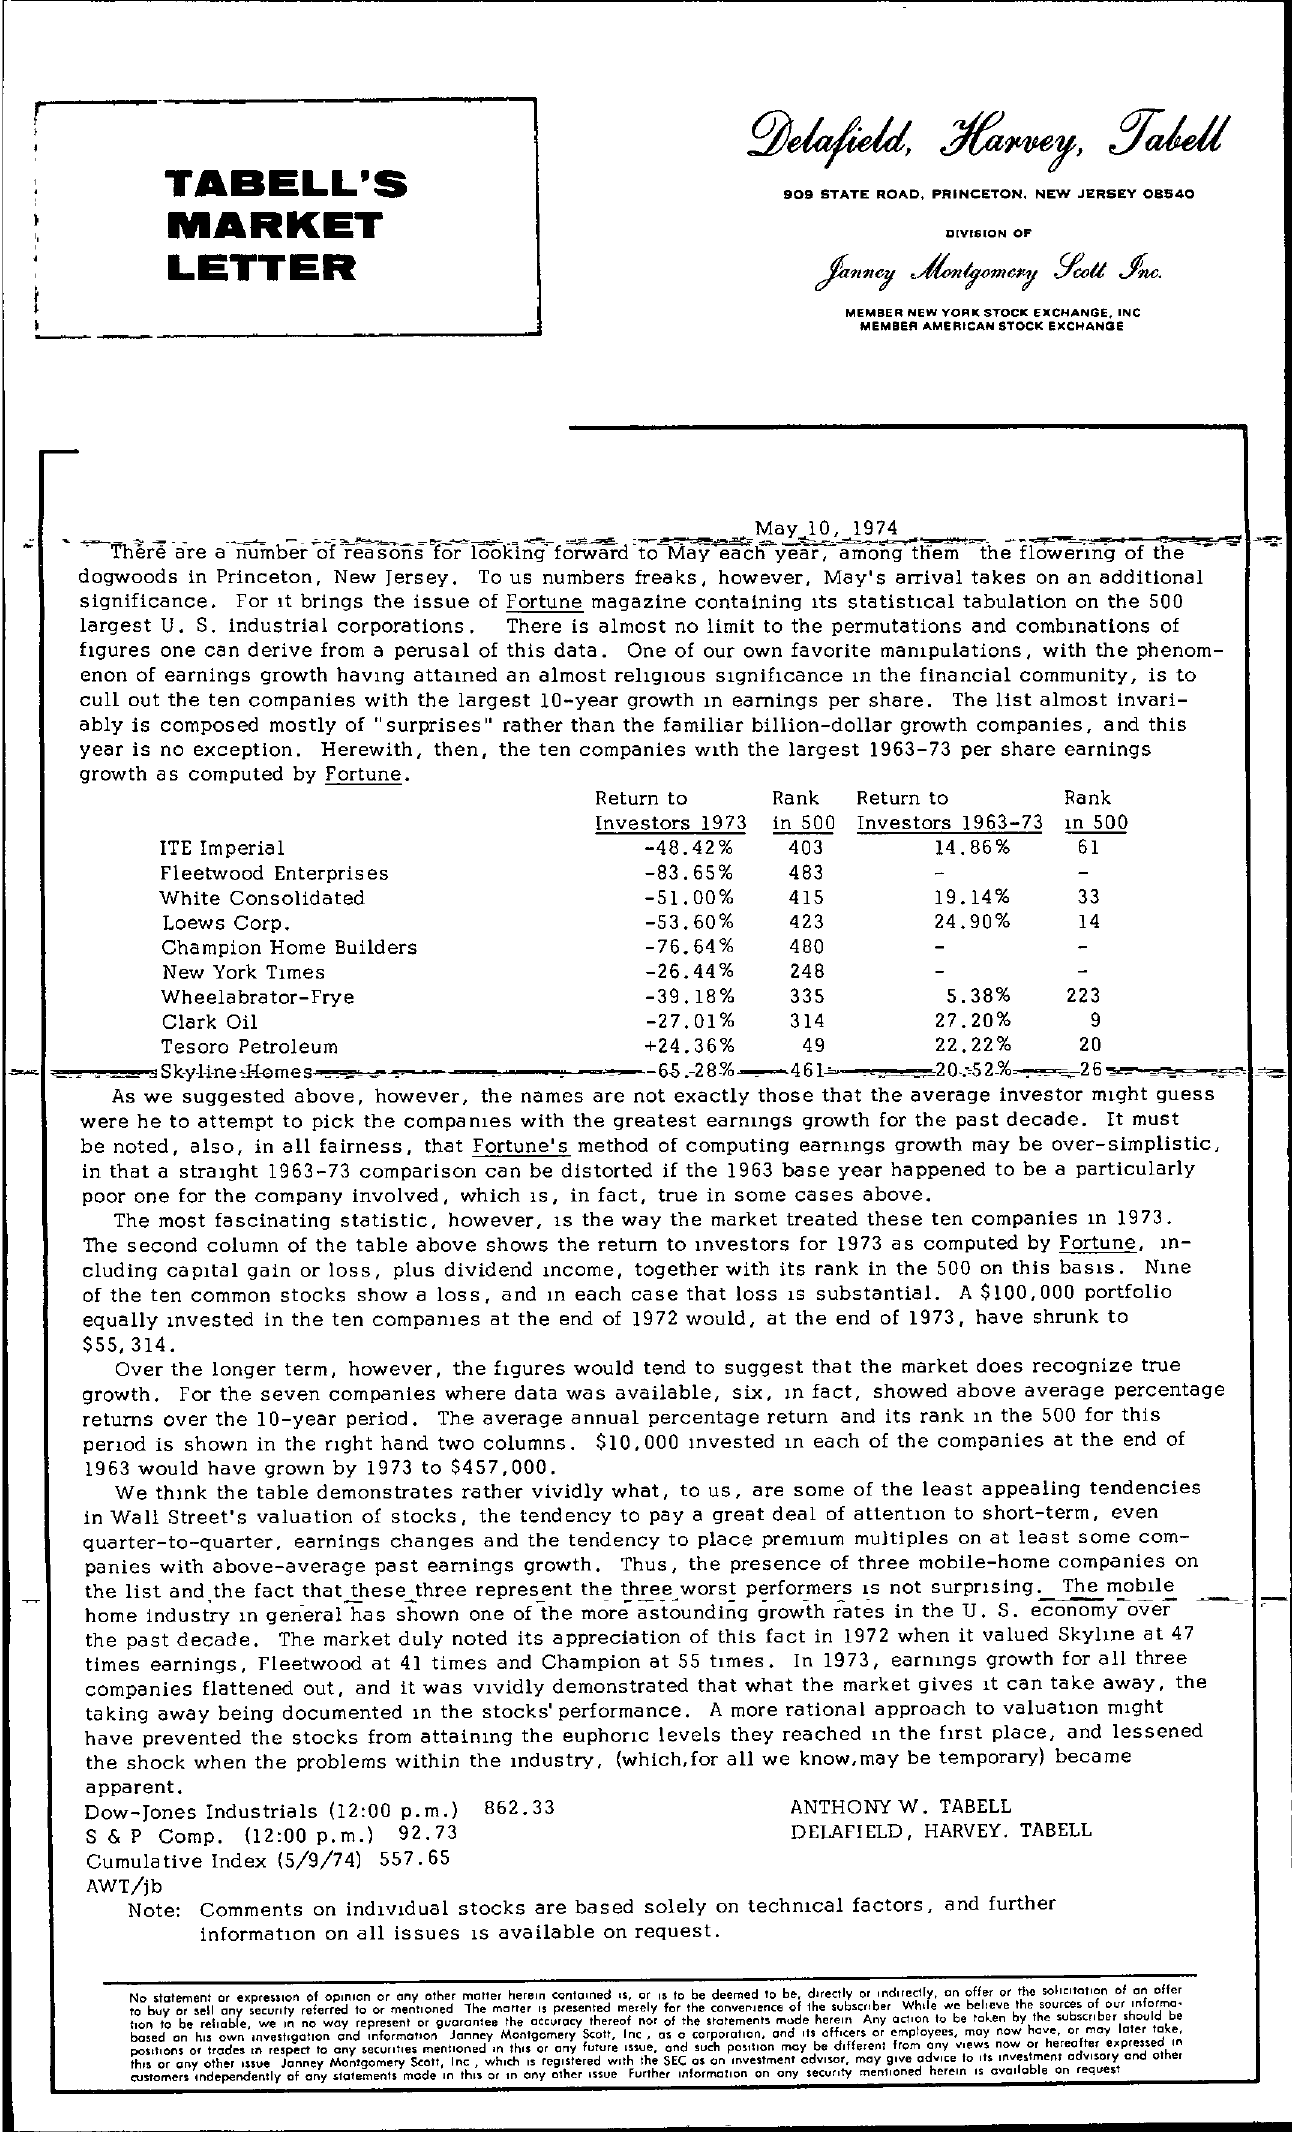 Tabell's Market Letter - May 10, 1974